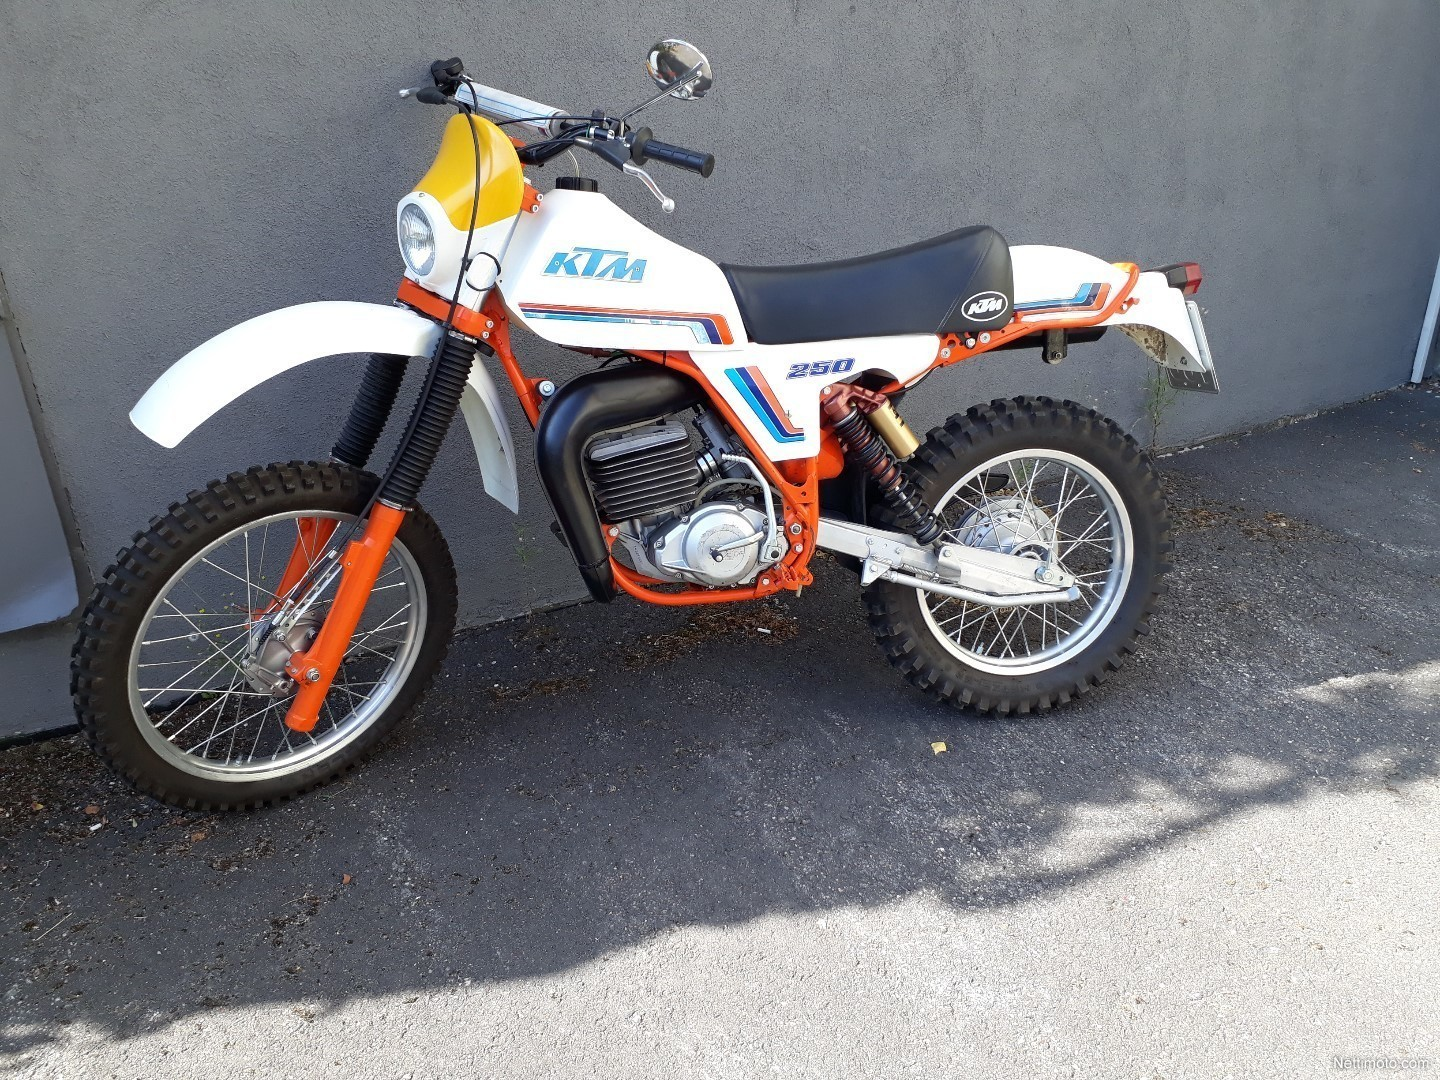 Motorcycle Irbis GR 250: photo, specifications, pros and cons, reviews 100